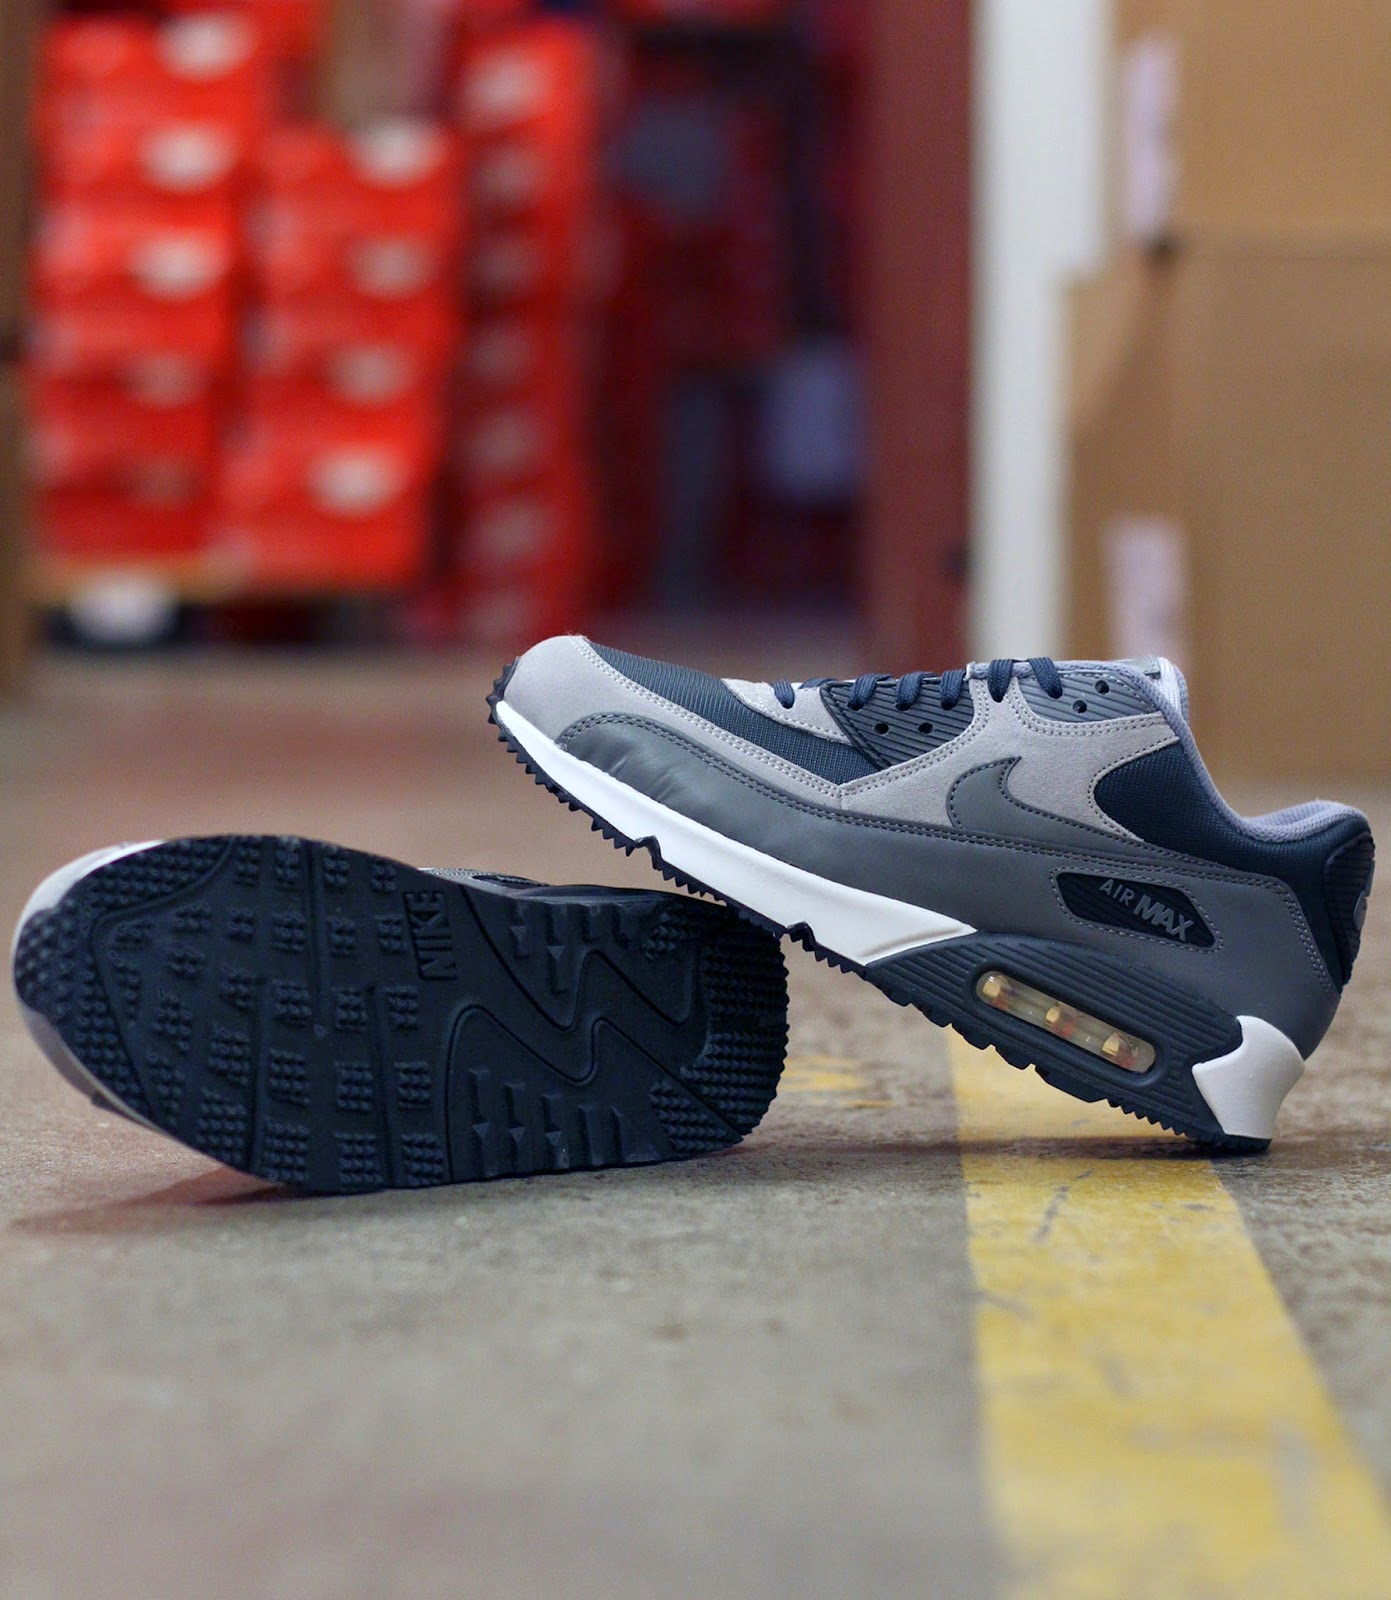 separation shoes 29274 91855 http   www.footish.se sneakers nike-air- · Nike Air Max 90 Winter Prm  683282-001